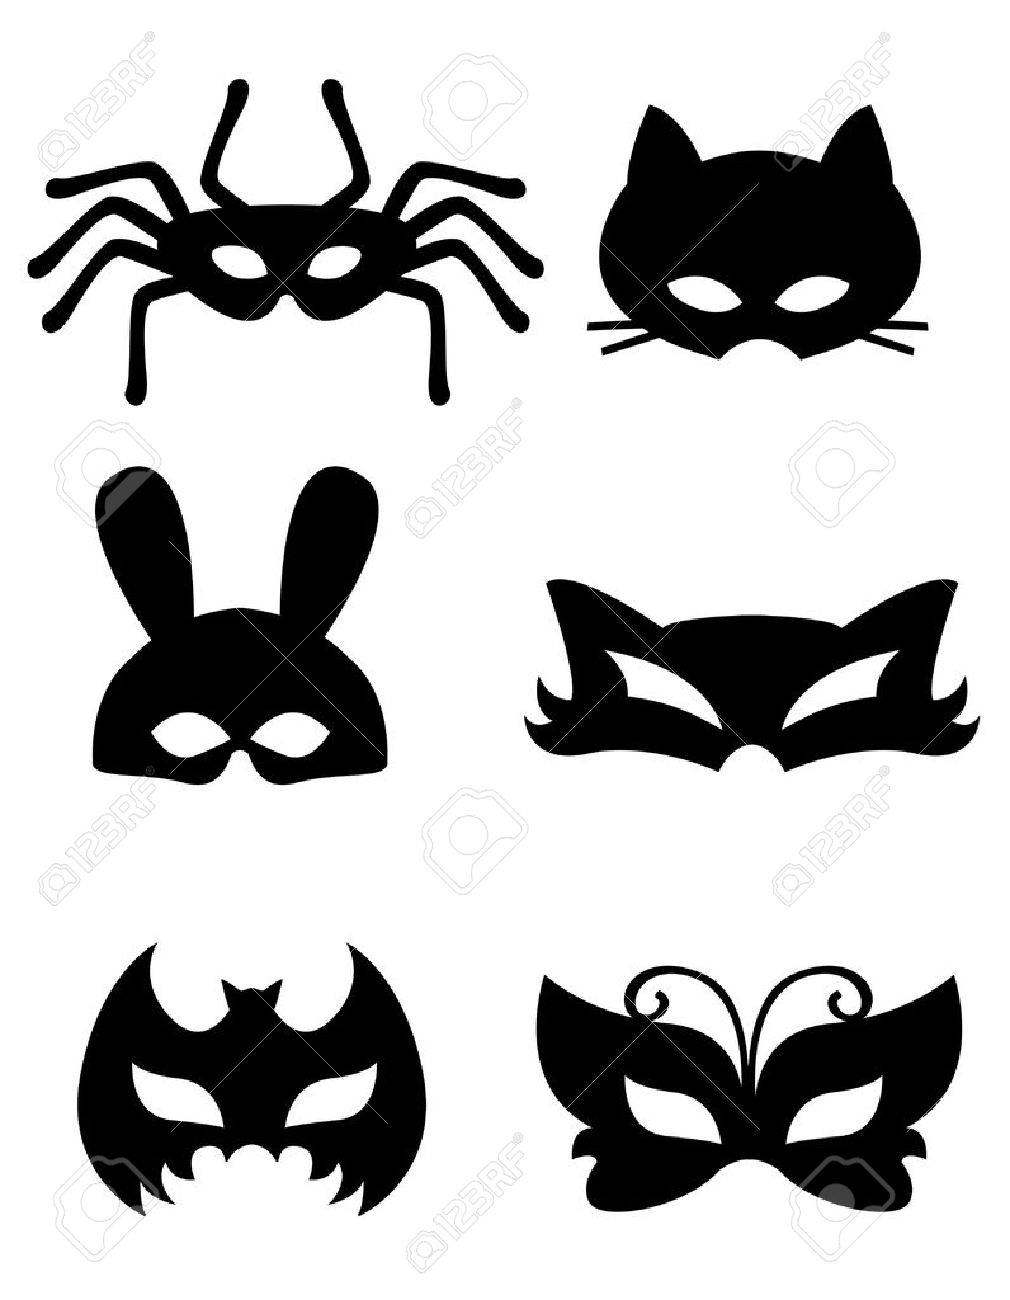 Wear face collection - False Face Collection Of Animal Masks With Animal Faces Ready To Print And Wear